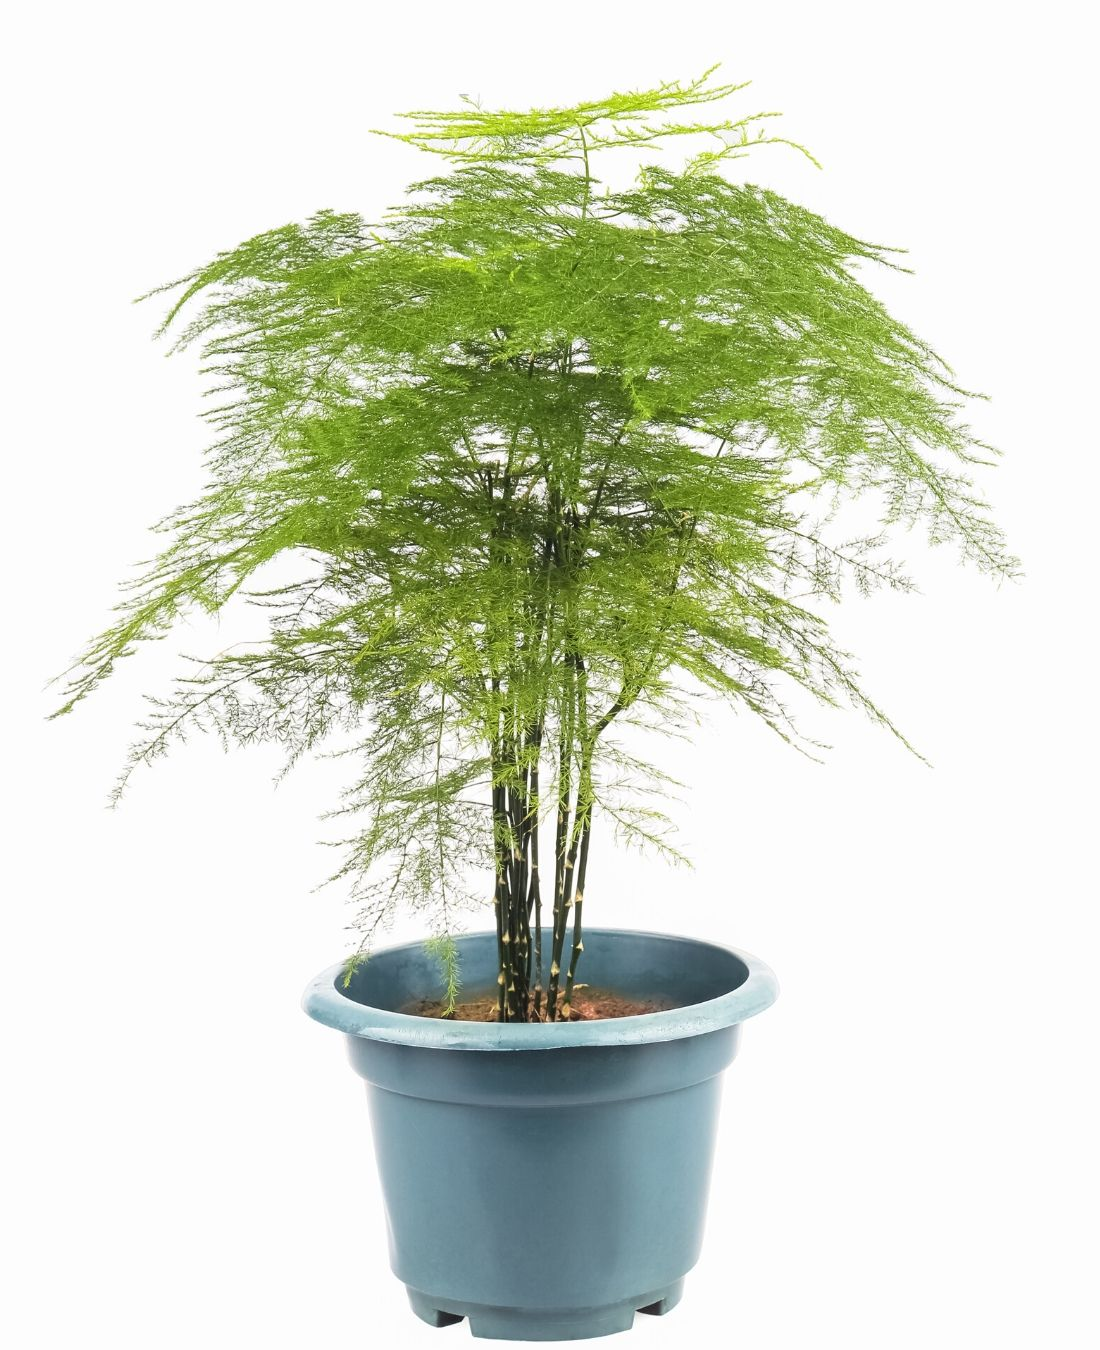 Best Office Plants | ImpeccaBuild | Asparagus Fern